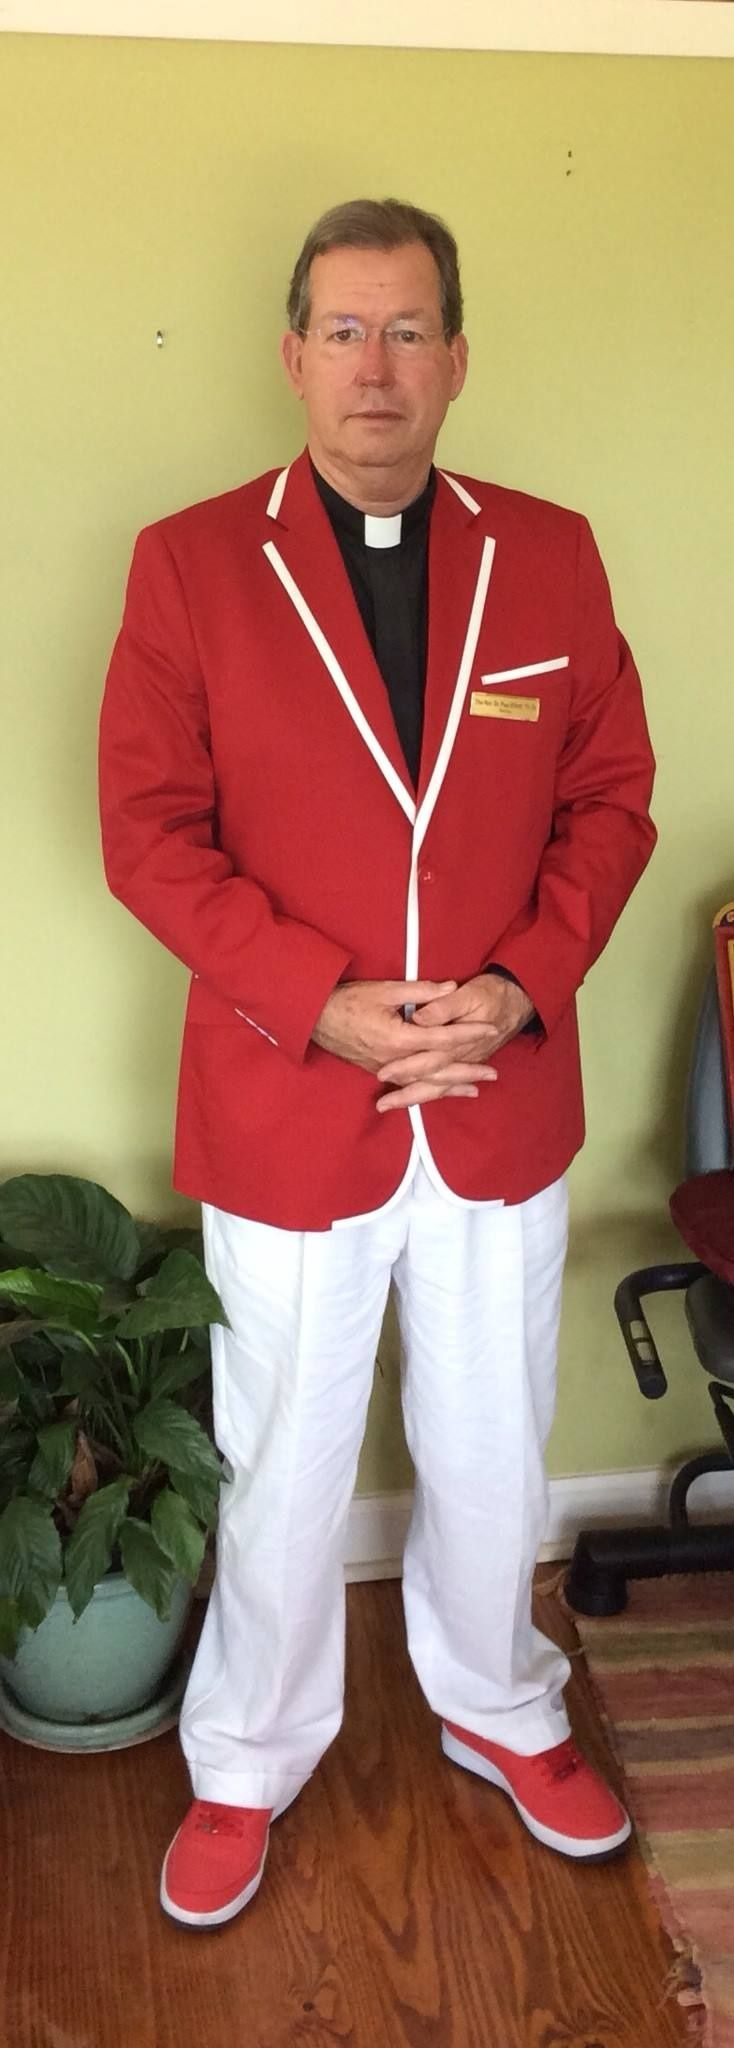 A lot of people dress up for Easter. We also dress up for Pentecost. See https://www.facebook.com/episcopalatlanta/photos/a.302784034227.146658.298949309227/10152485037524228/?type=1&theater